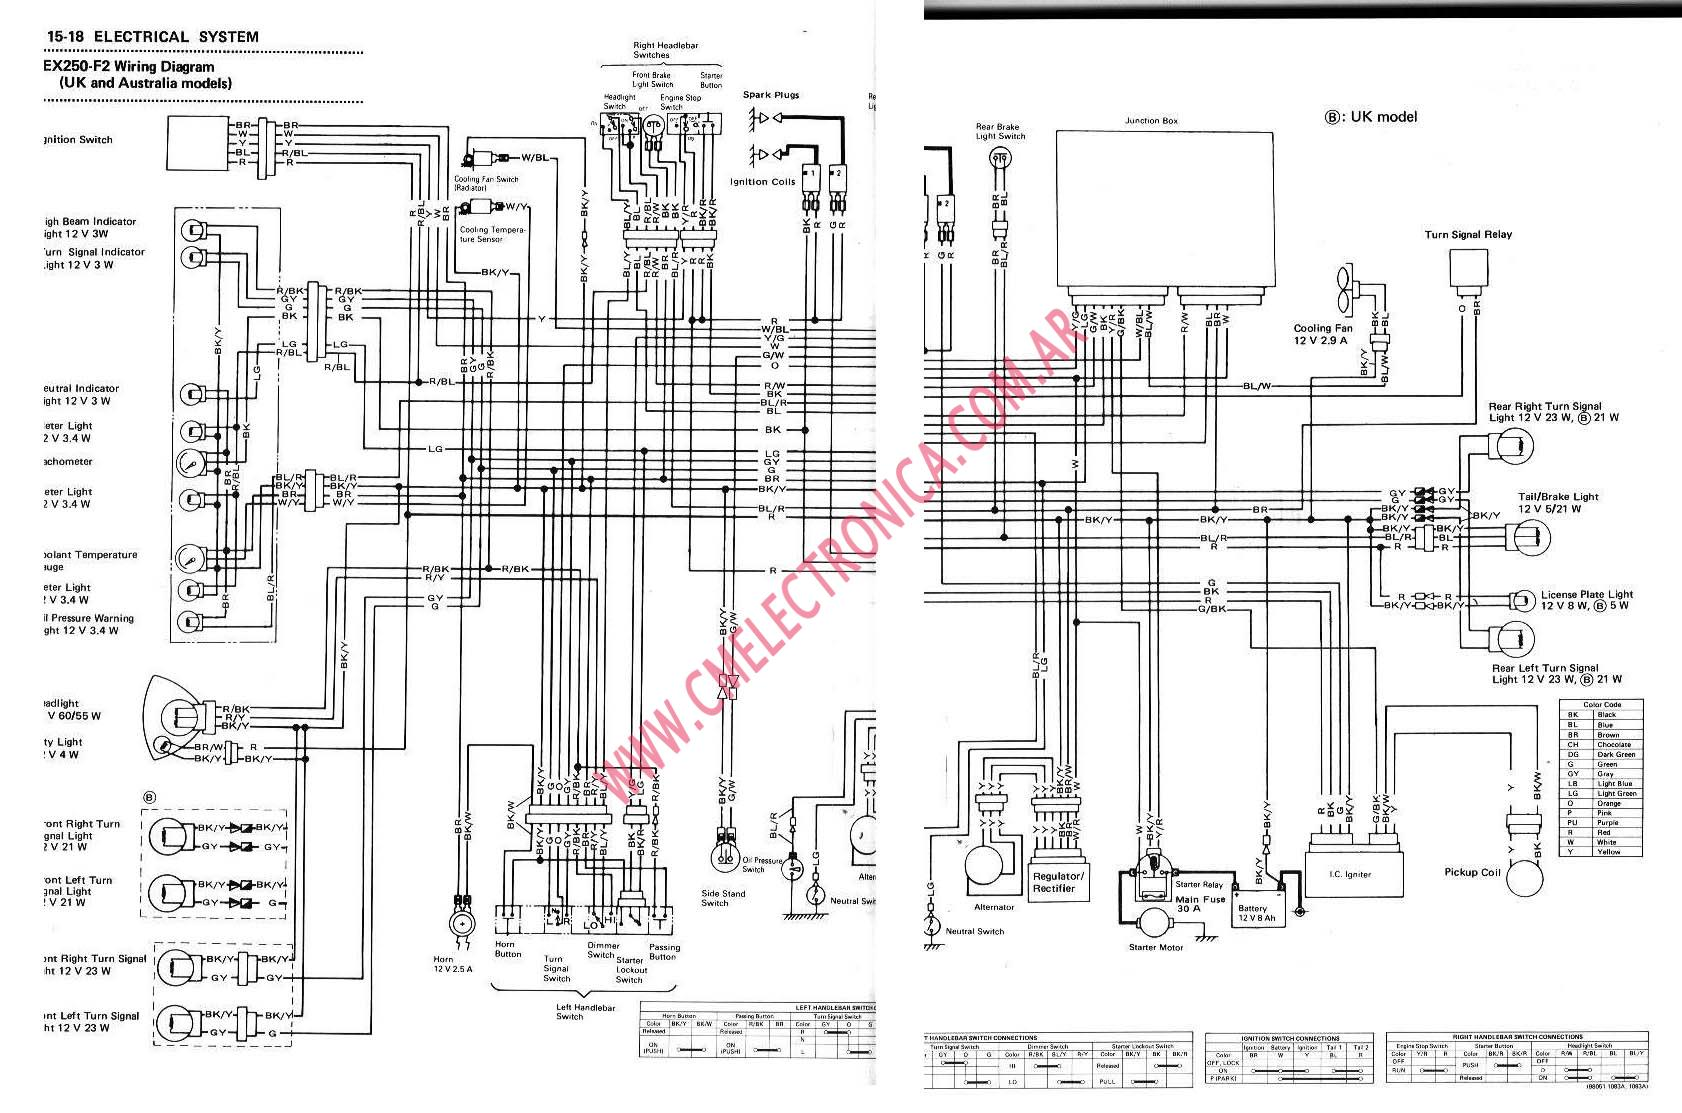 93 Tempo Wiring Diagram Guide And Troubleshooting Of 1985 Ford Fuse Box Mercury Grand Marquis Imageresizertool Com 1986 Gl 2 Door